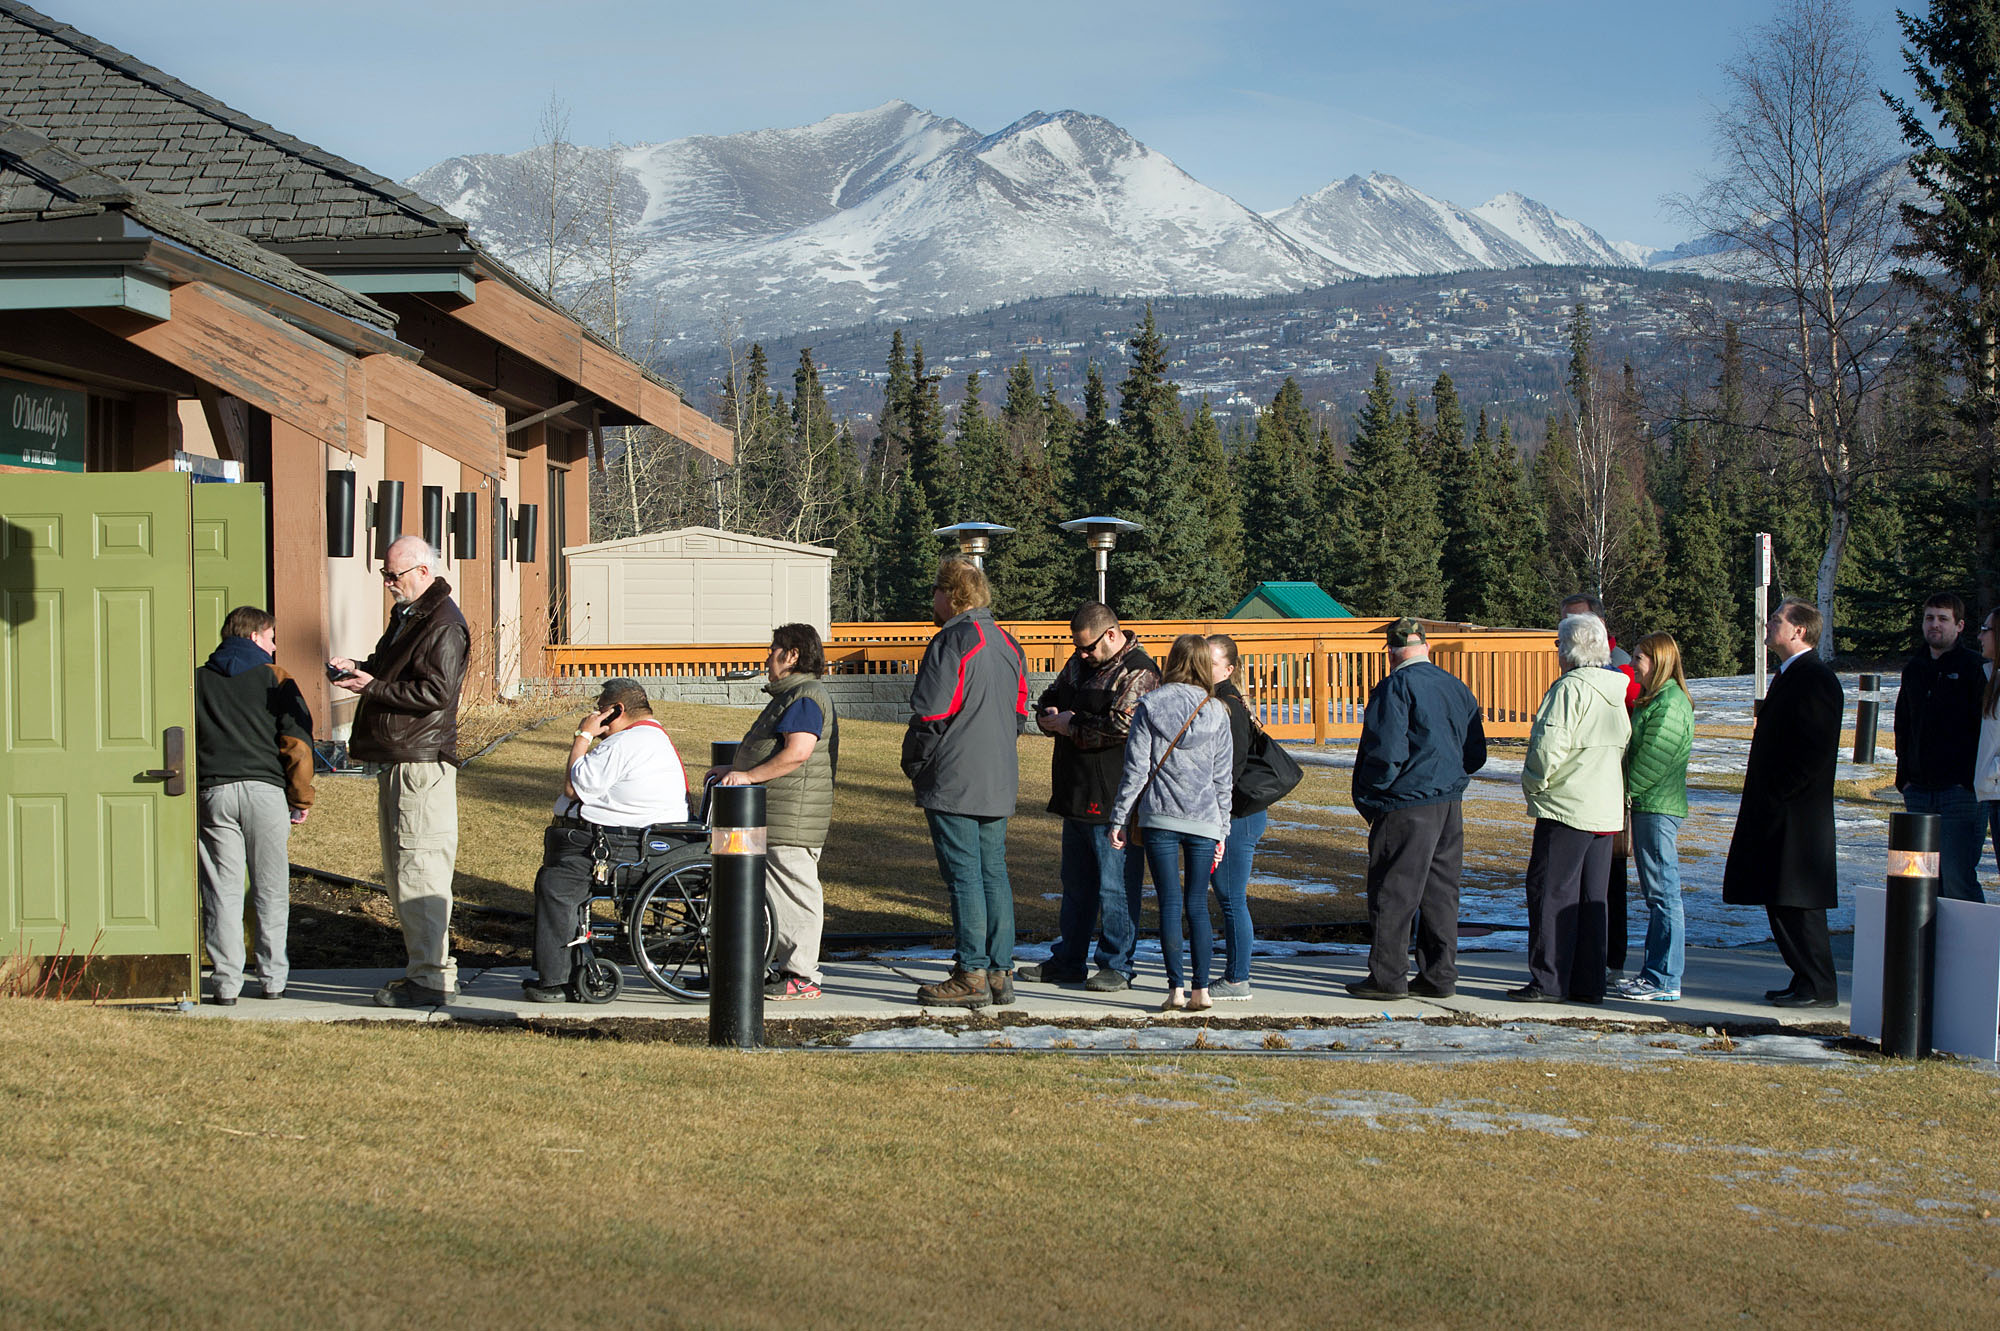 Republican voters line up outside a polling place Tuesday, March 1, 2016 in Anchorage, Alaska. Alaska Republicans are poised to decide which of the remaining GOP presidential candidates will get their support.